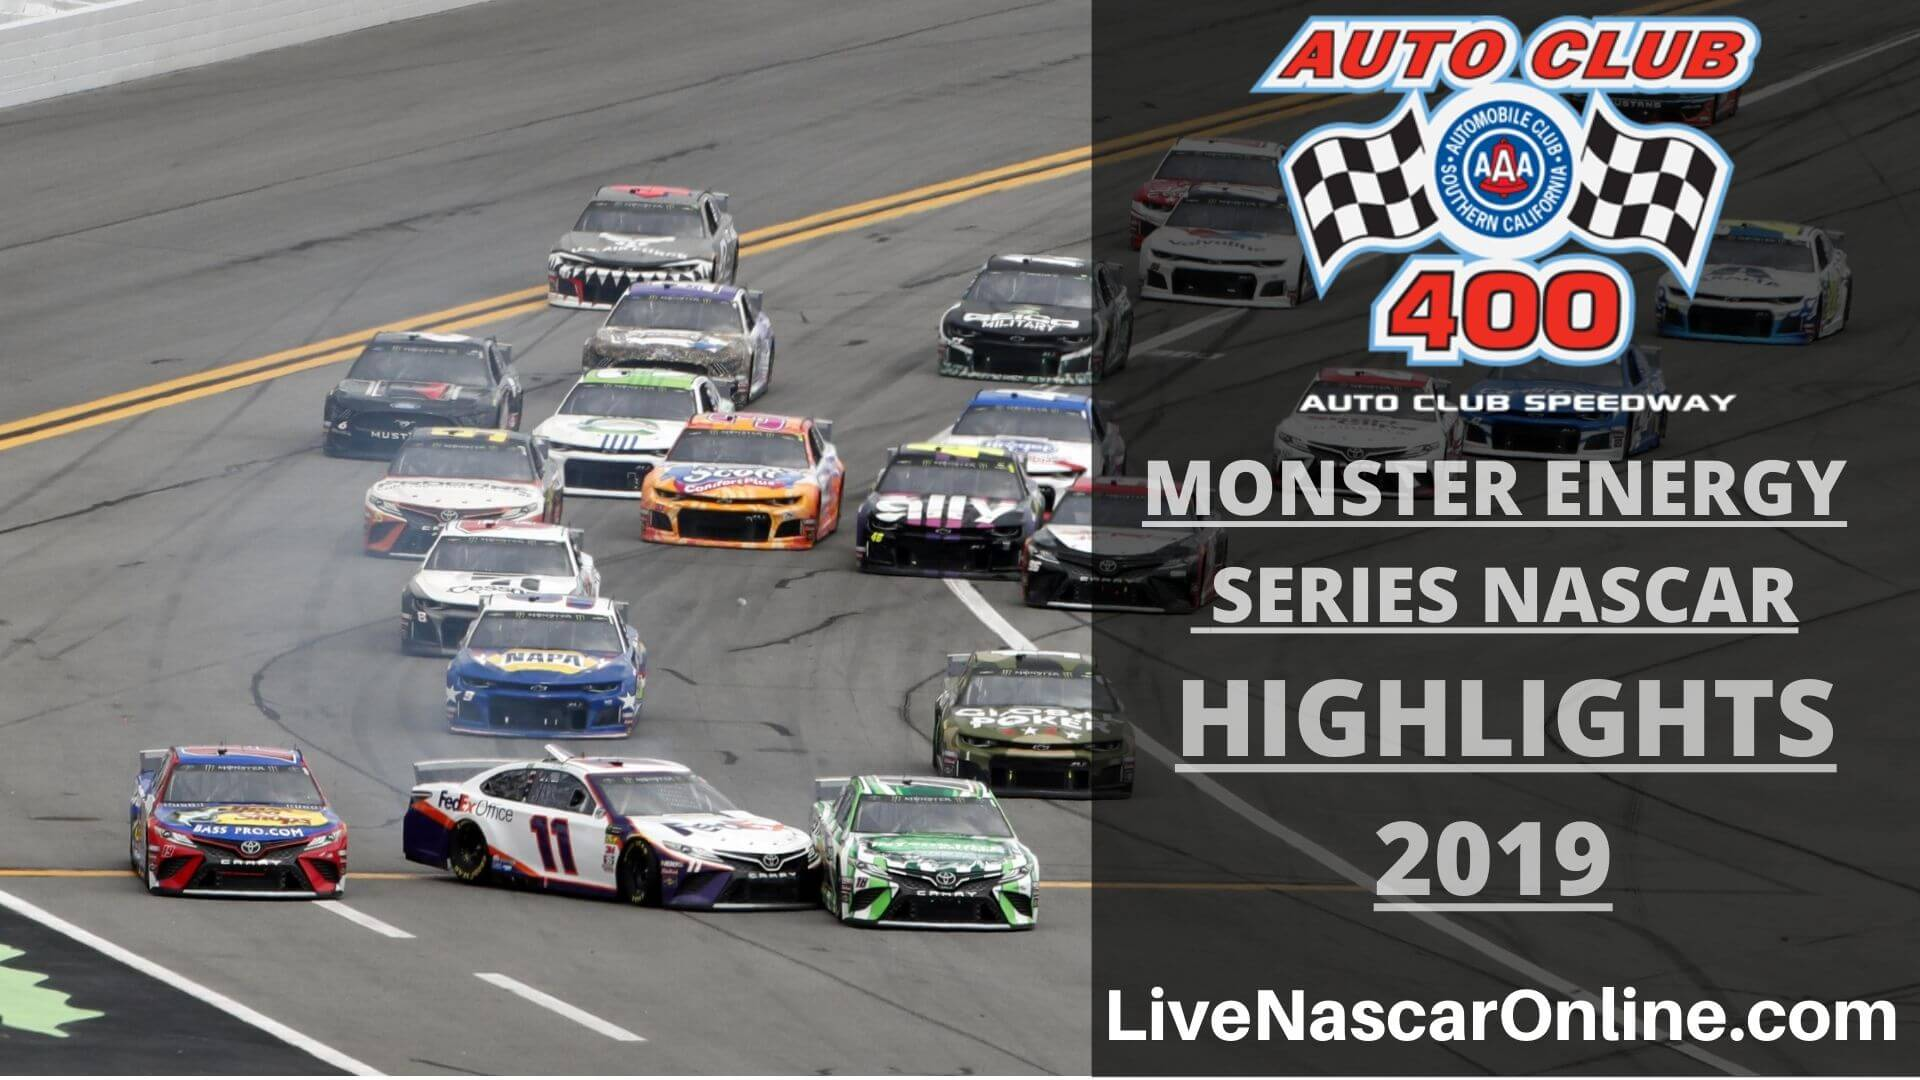 NASCAR Monster Series AUTO CLUB 400 Highlights 2019 Online